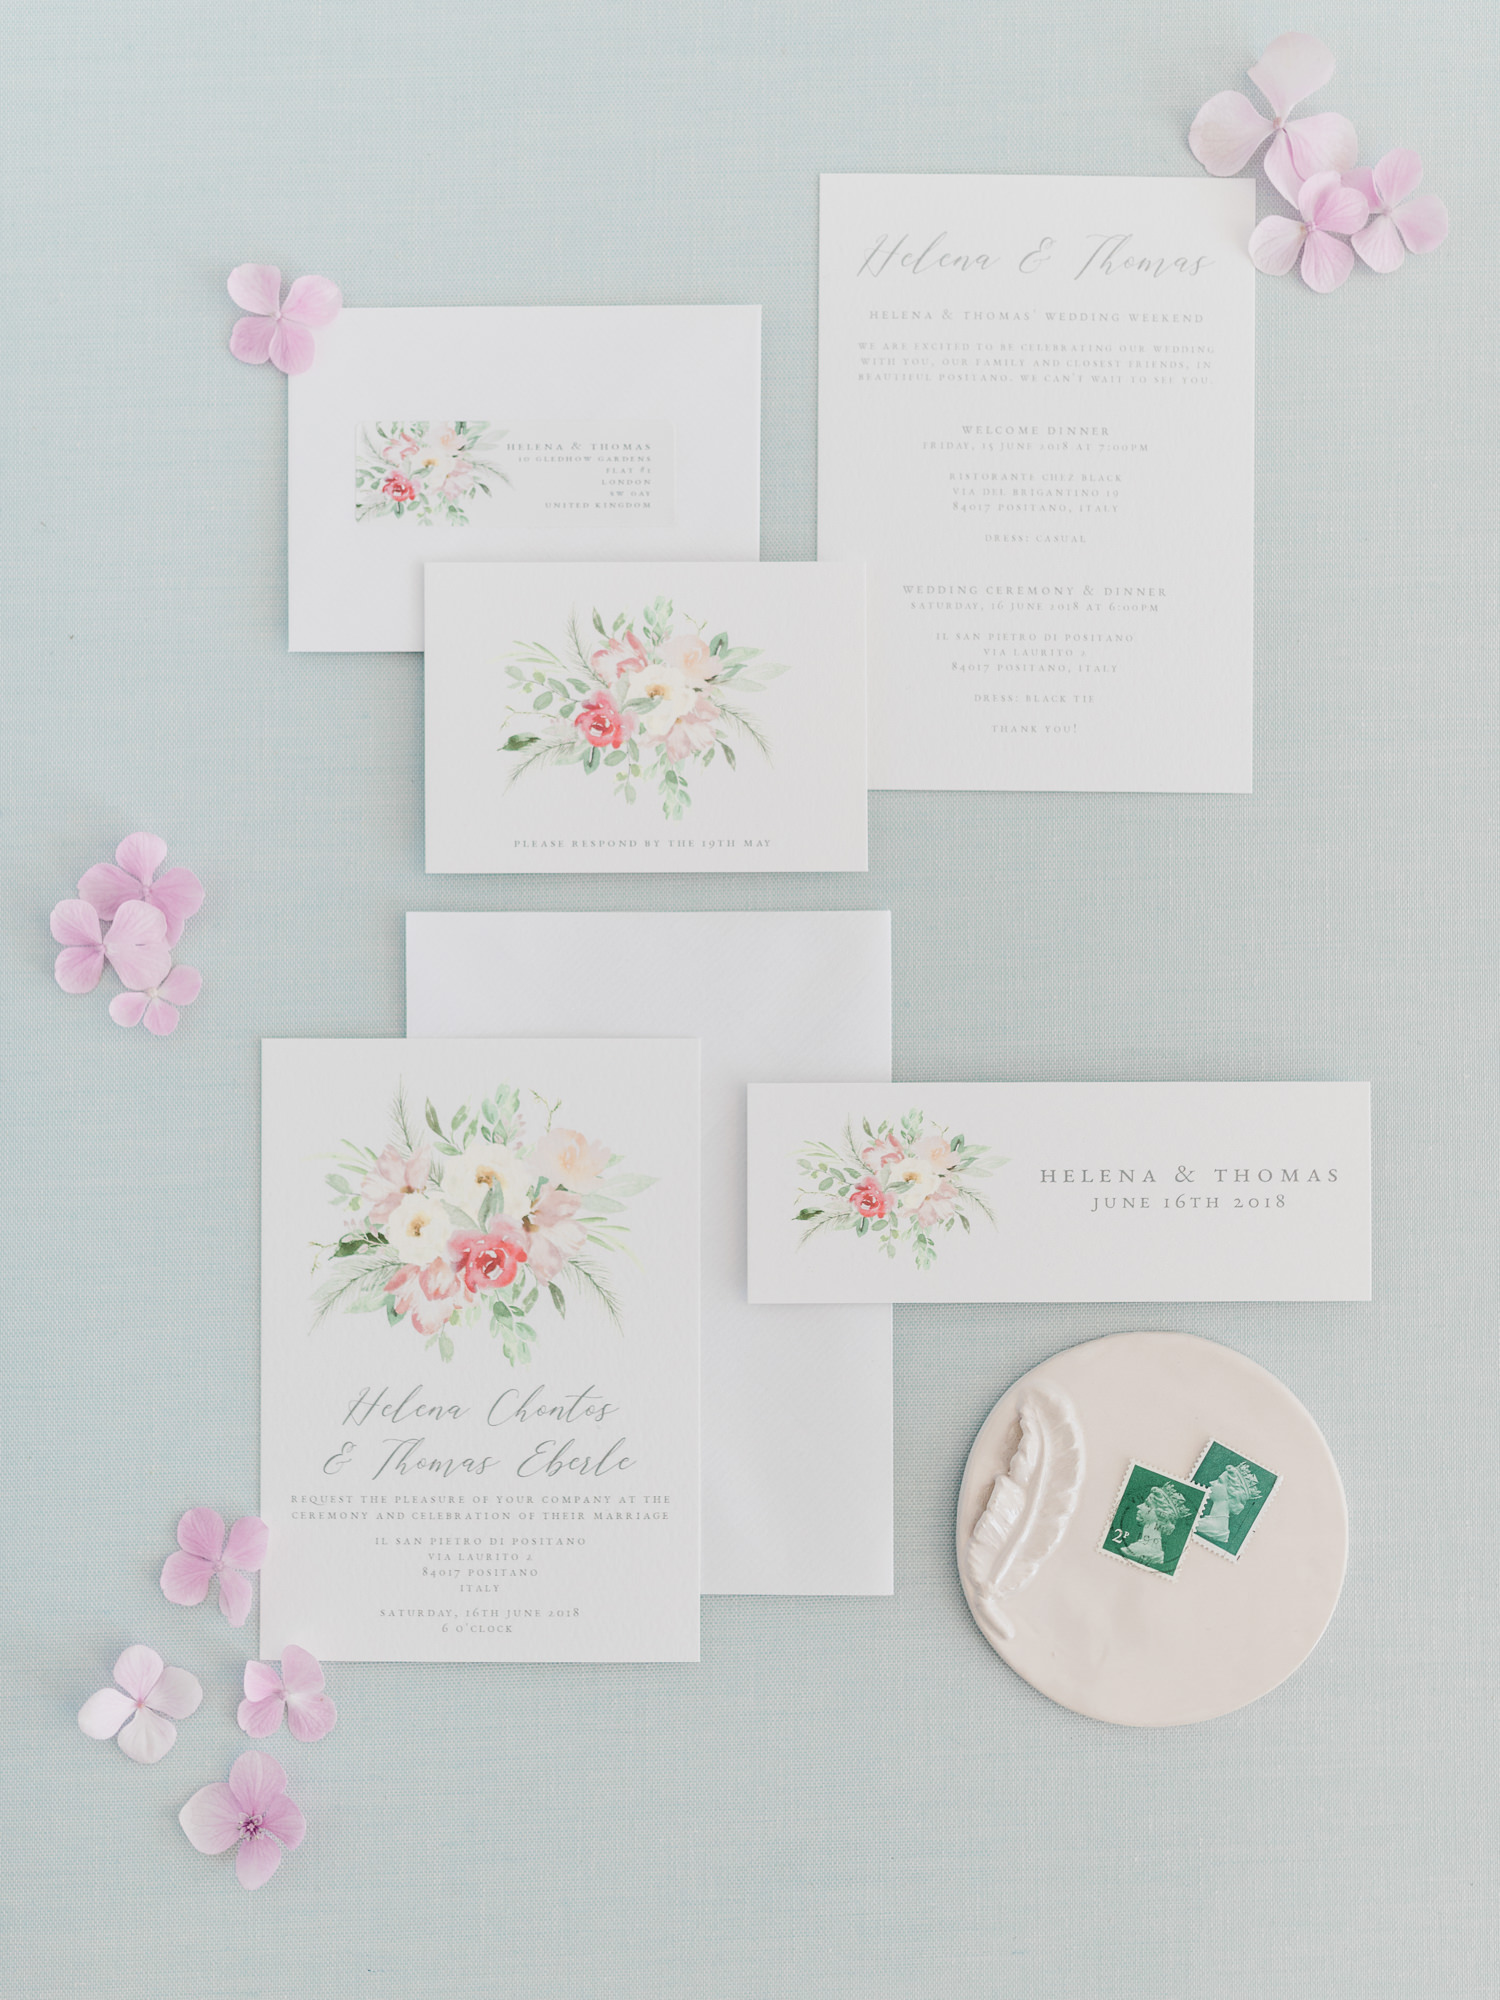 Floral wedding invitations - photo by Gianluca Adovasio Photography